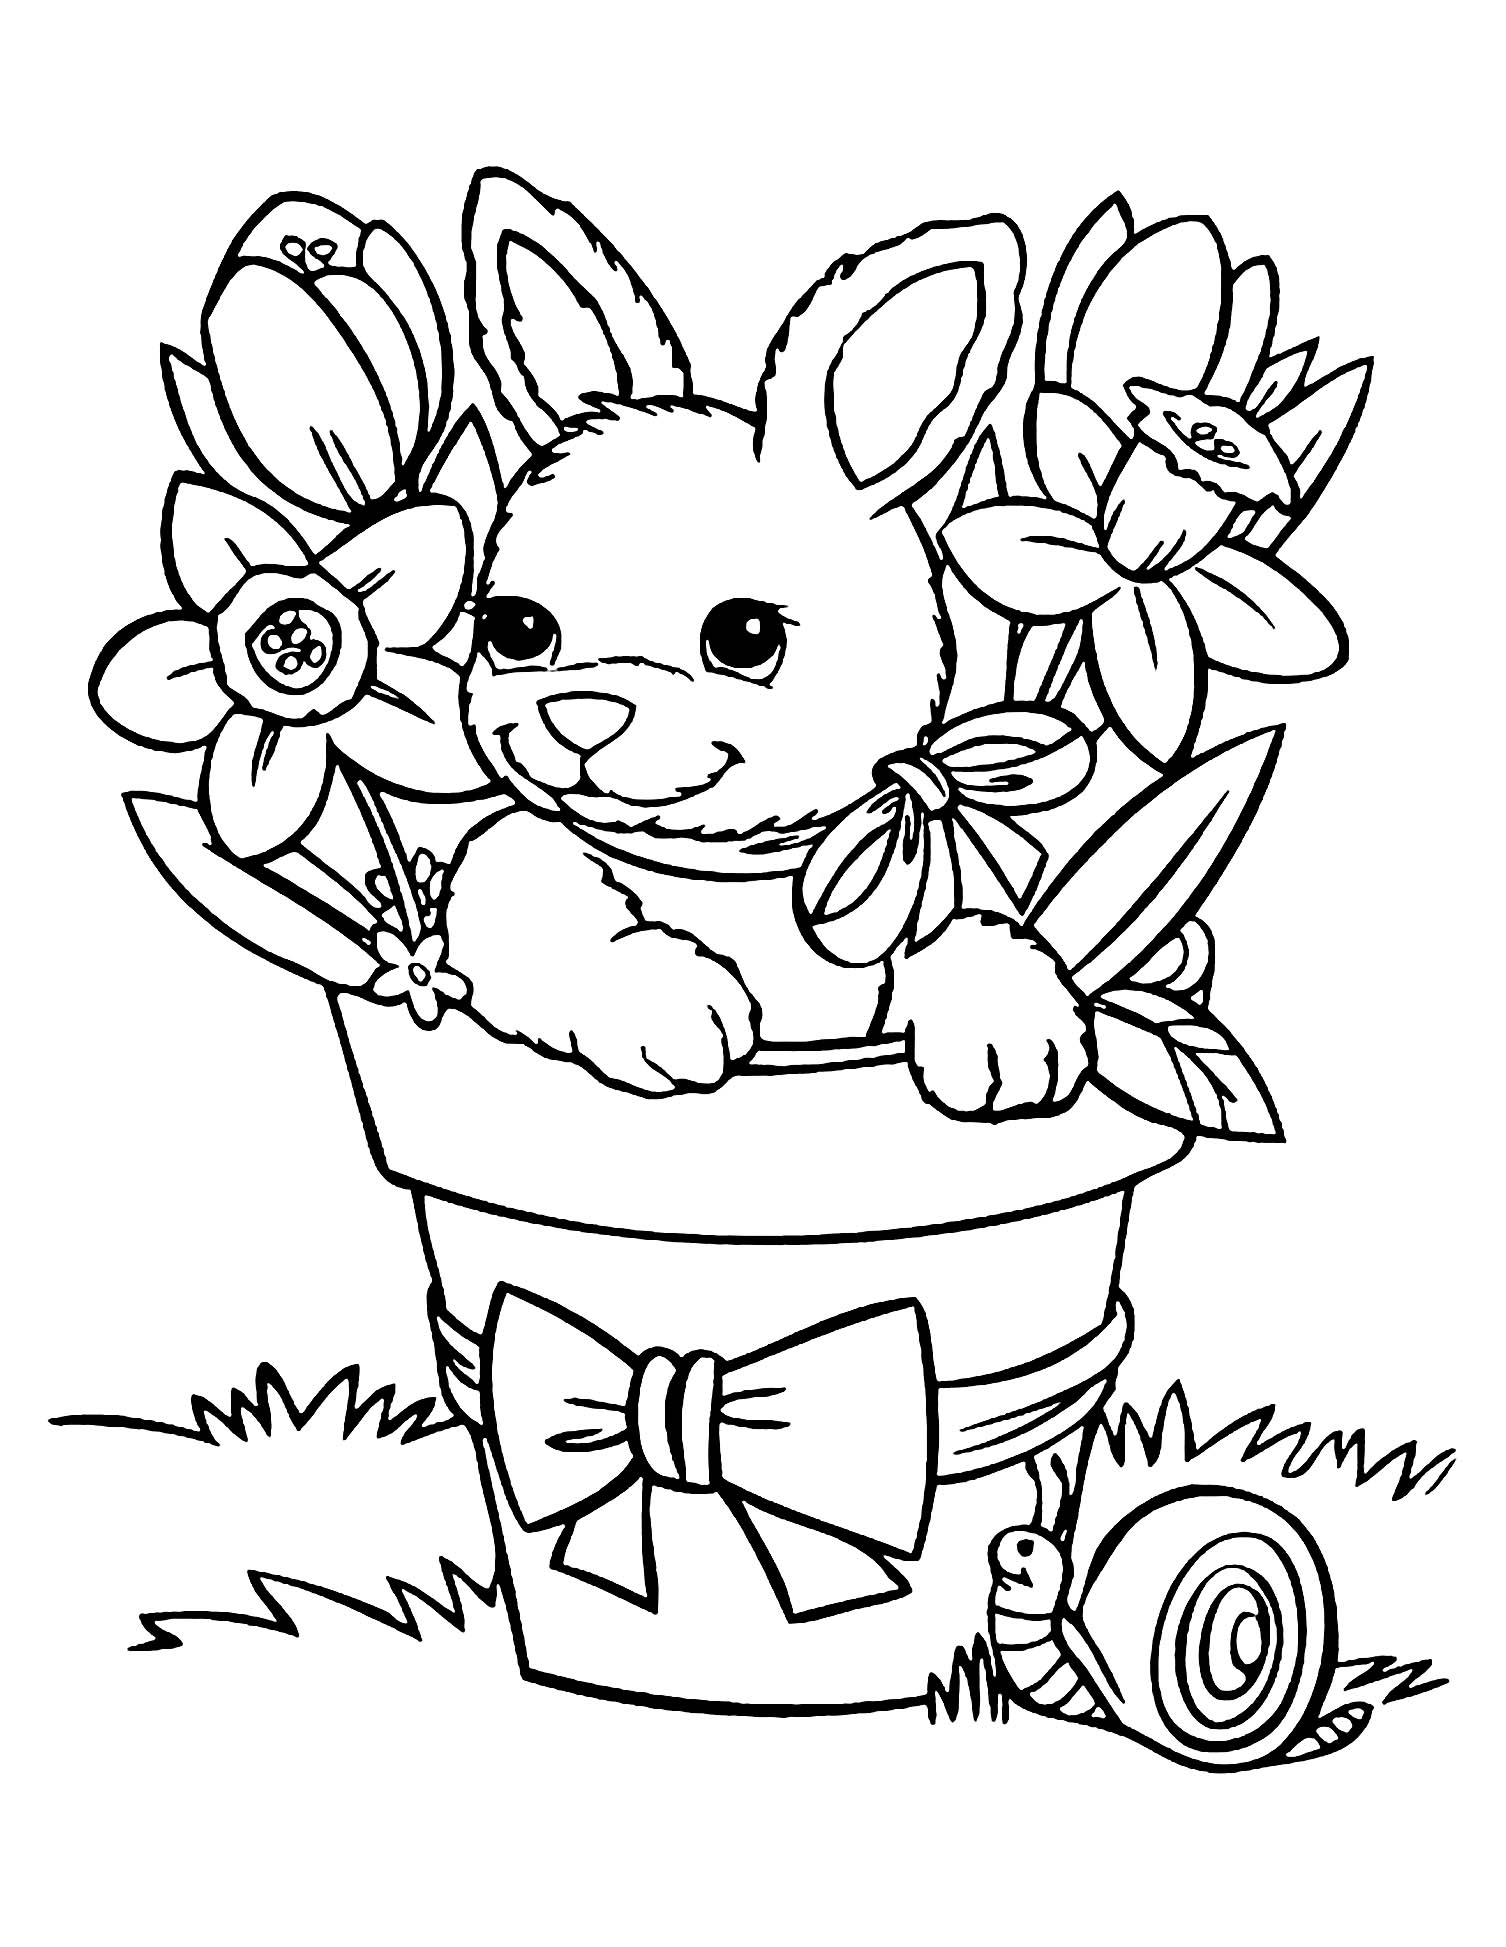 bunny coloring picture rabbit free to color for children rabbit kids coloring pages picture bunny coloring